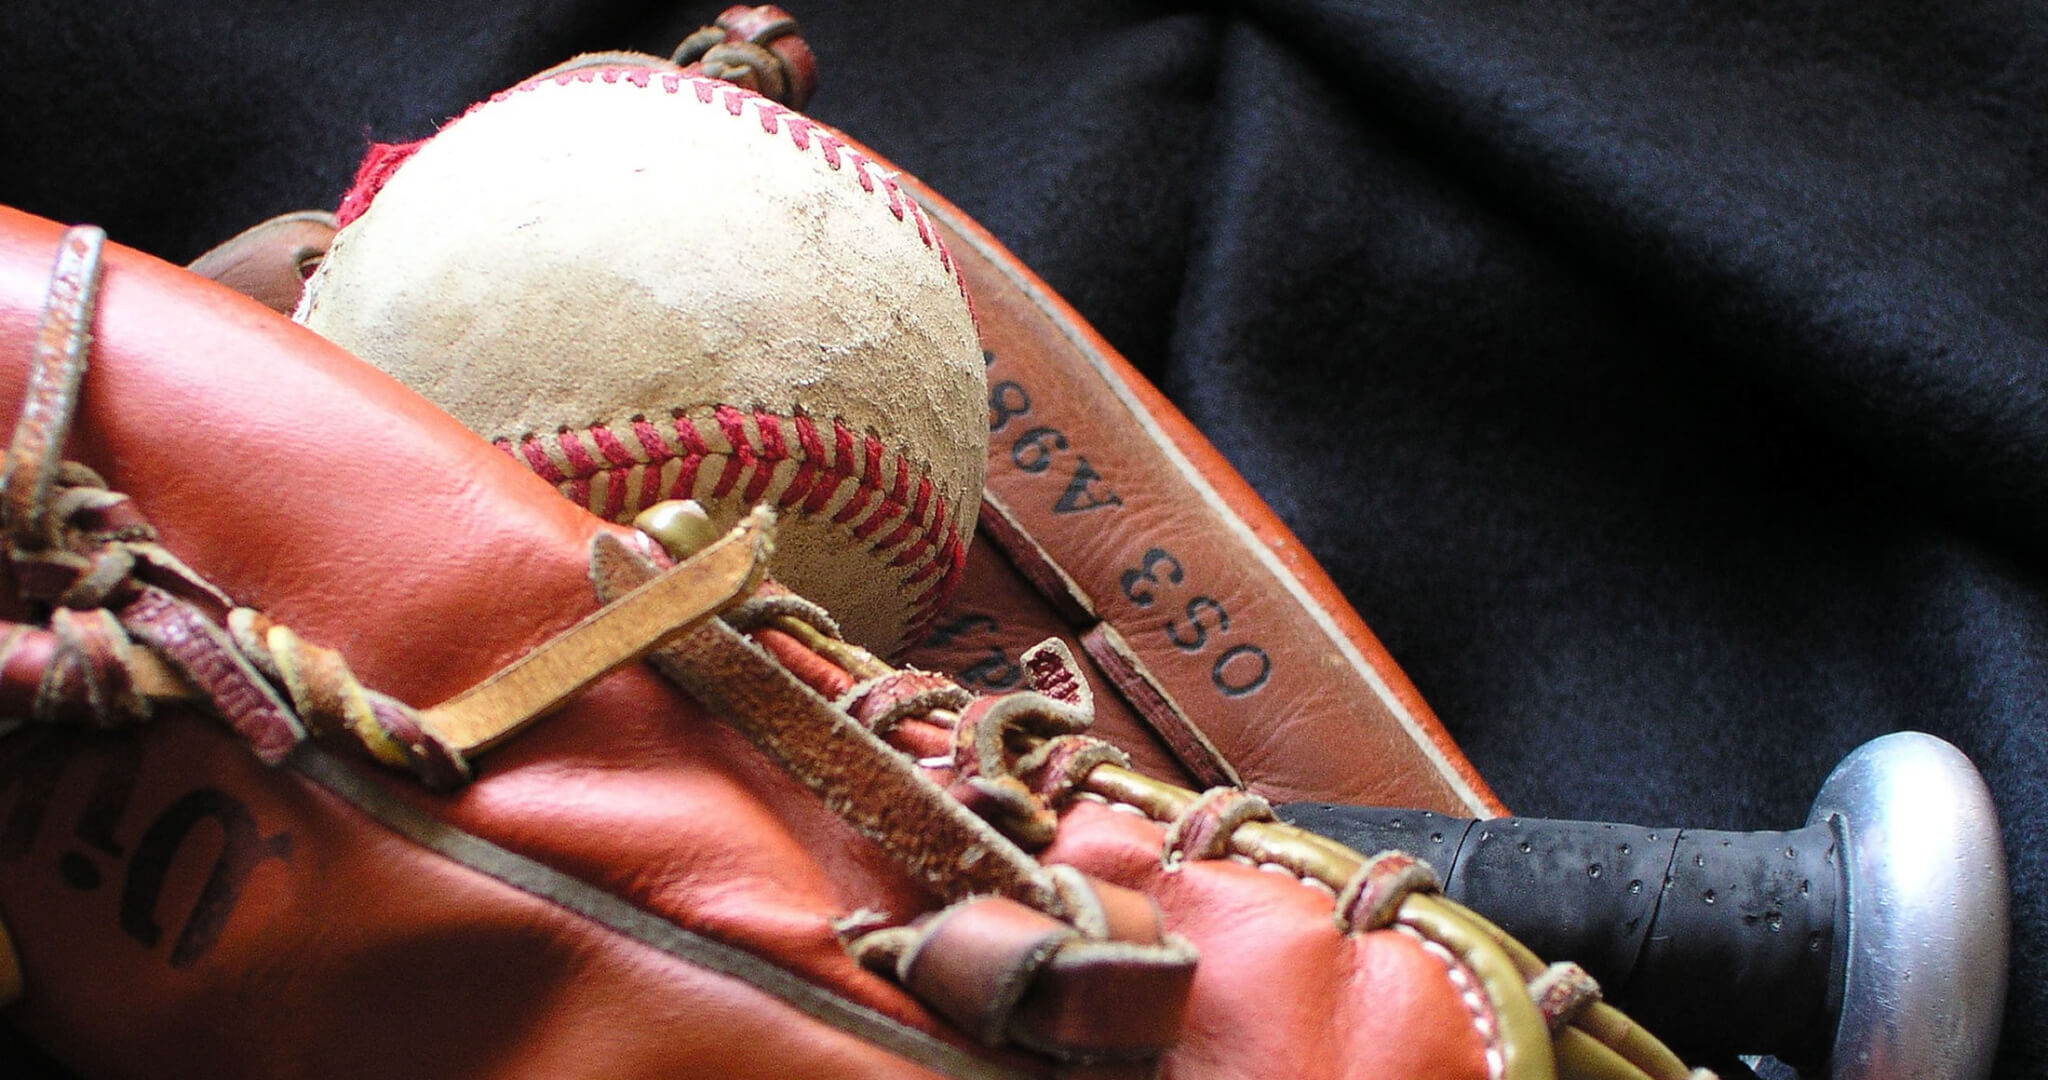 Image of a baseball, glove and bat